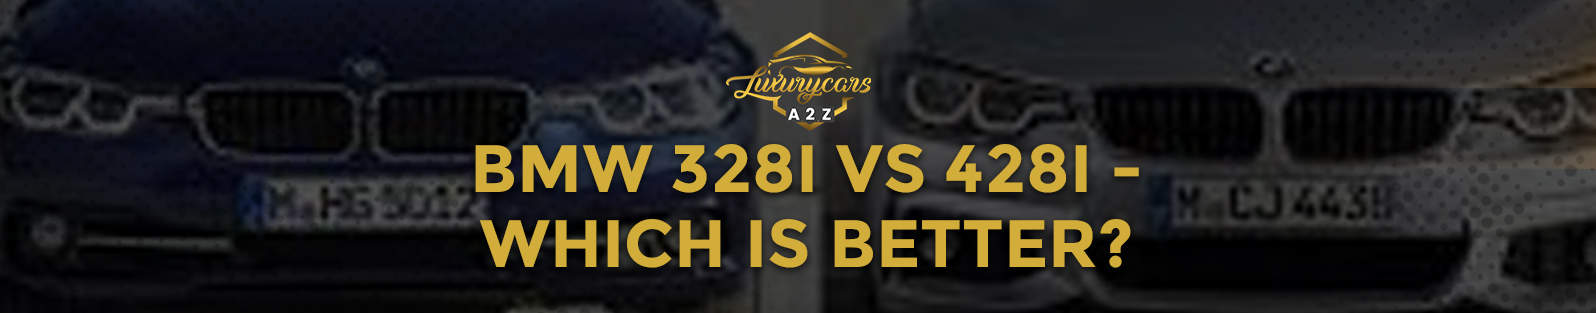 bmw 328i vs 428i - which is better?